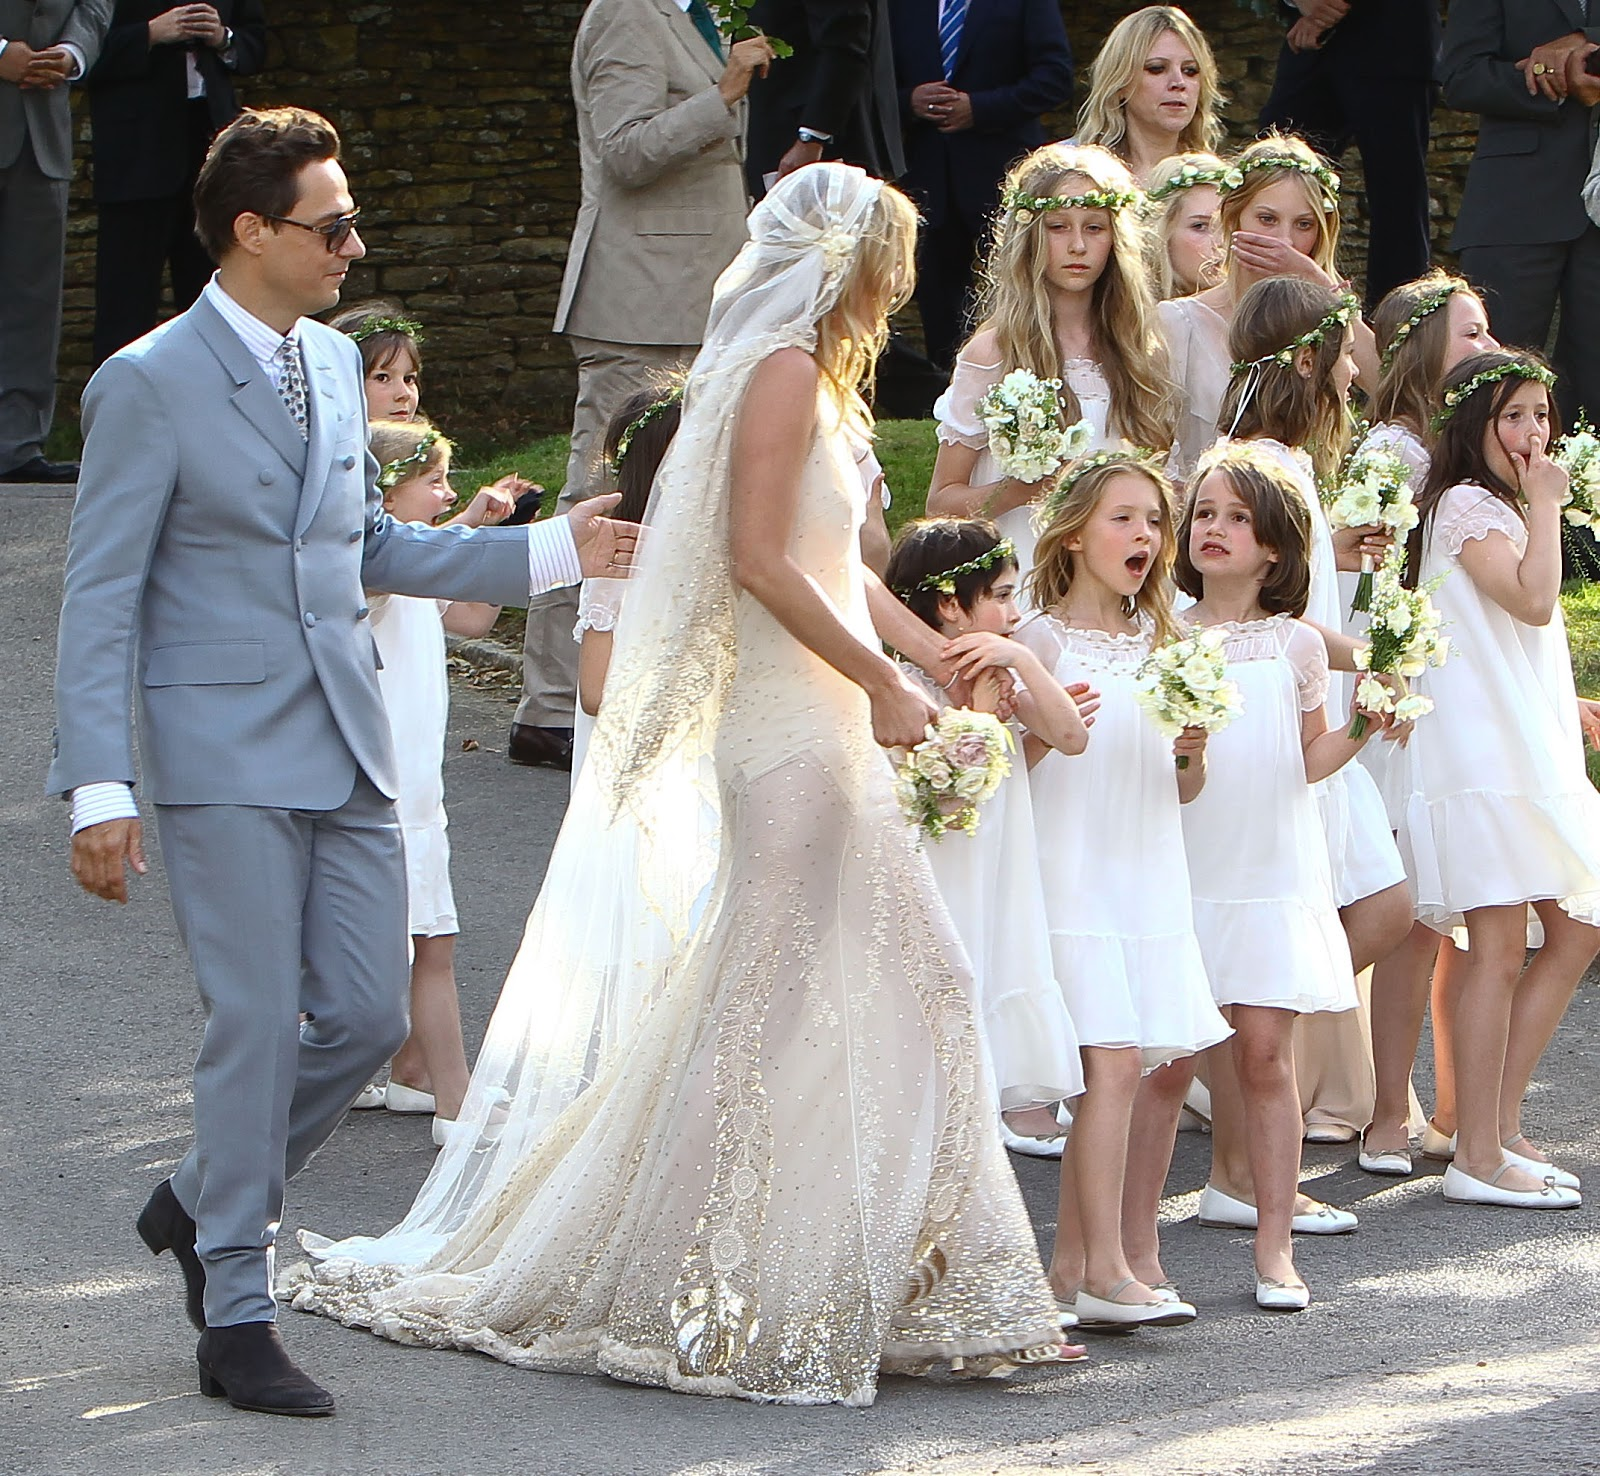 http://3.bp.blogspot.com/-9oSW8dwN9bQ/TkQzbxwdUKI/AAAAAAAAAas/QYRSY0p3AWc/s1600/wenn3420966-Kate-Moss-Wedding-Dress.jpg